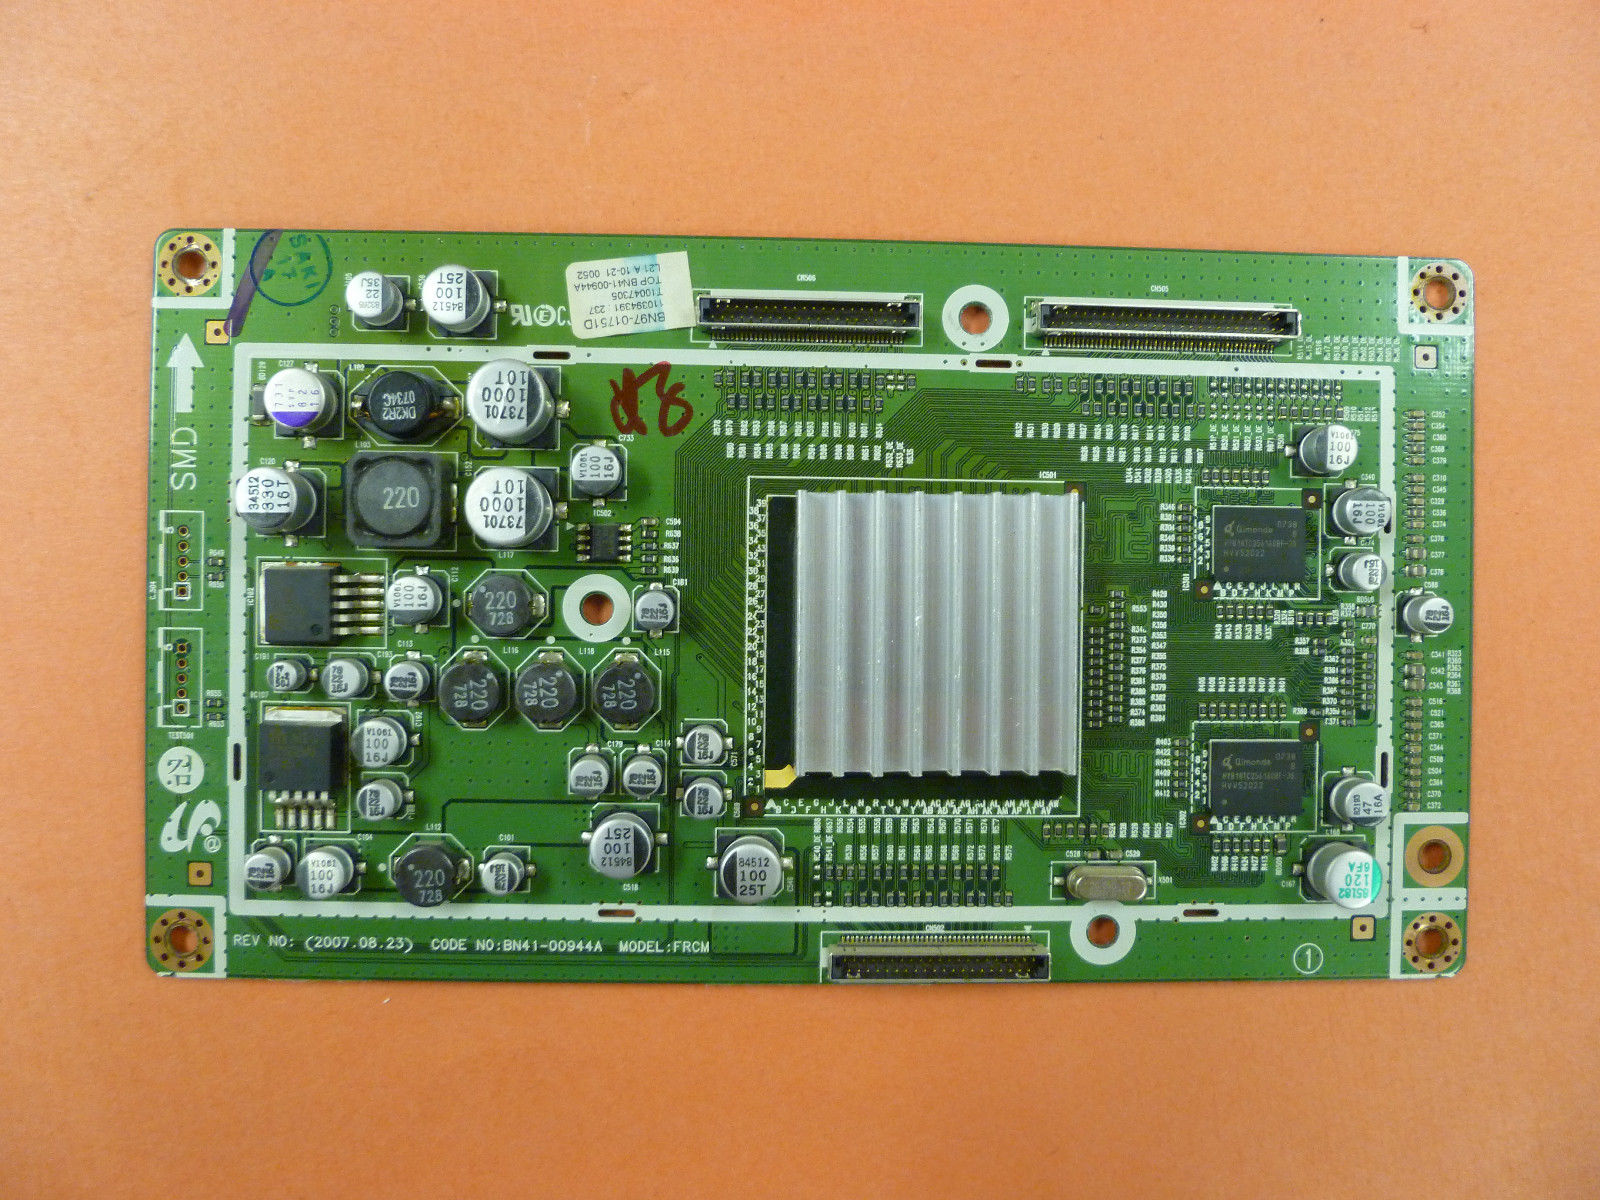 SAMAUNG LCD TV VIDEO BOARD BN41-00944A FRCM FROM LN-T4071F